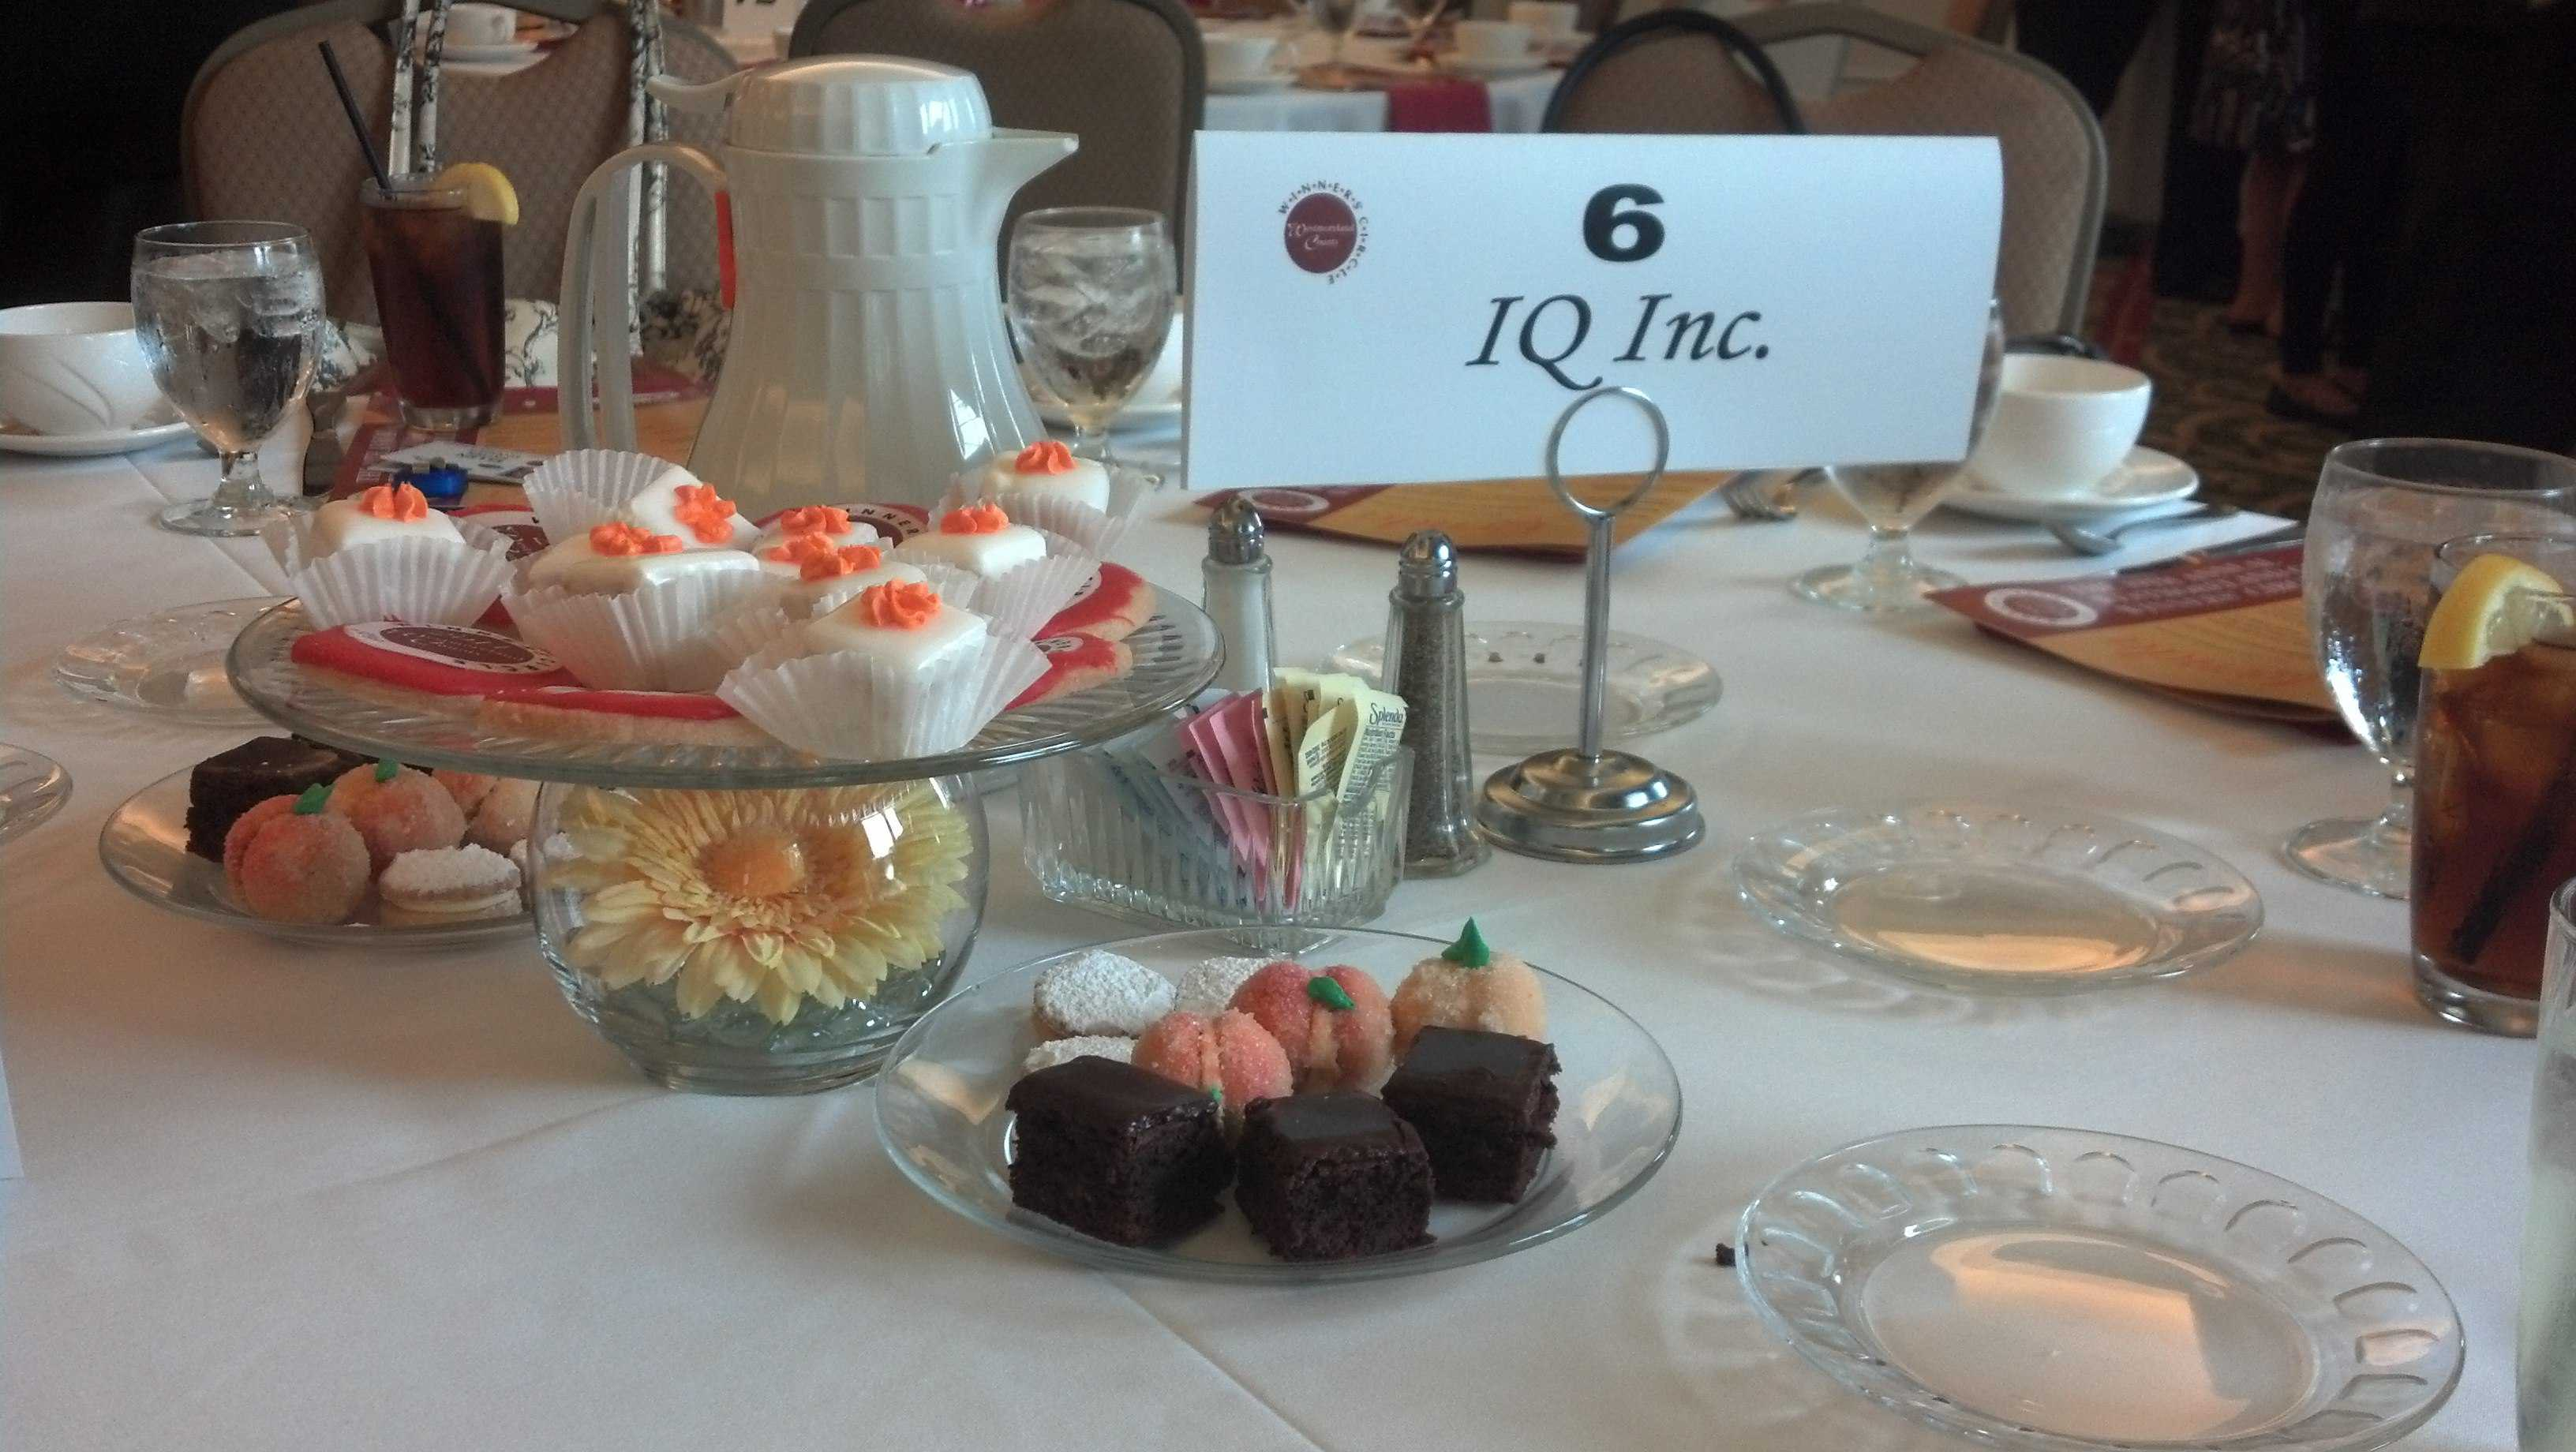 IQ Inc Table at Winners' Circle Awards Luncheon